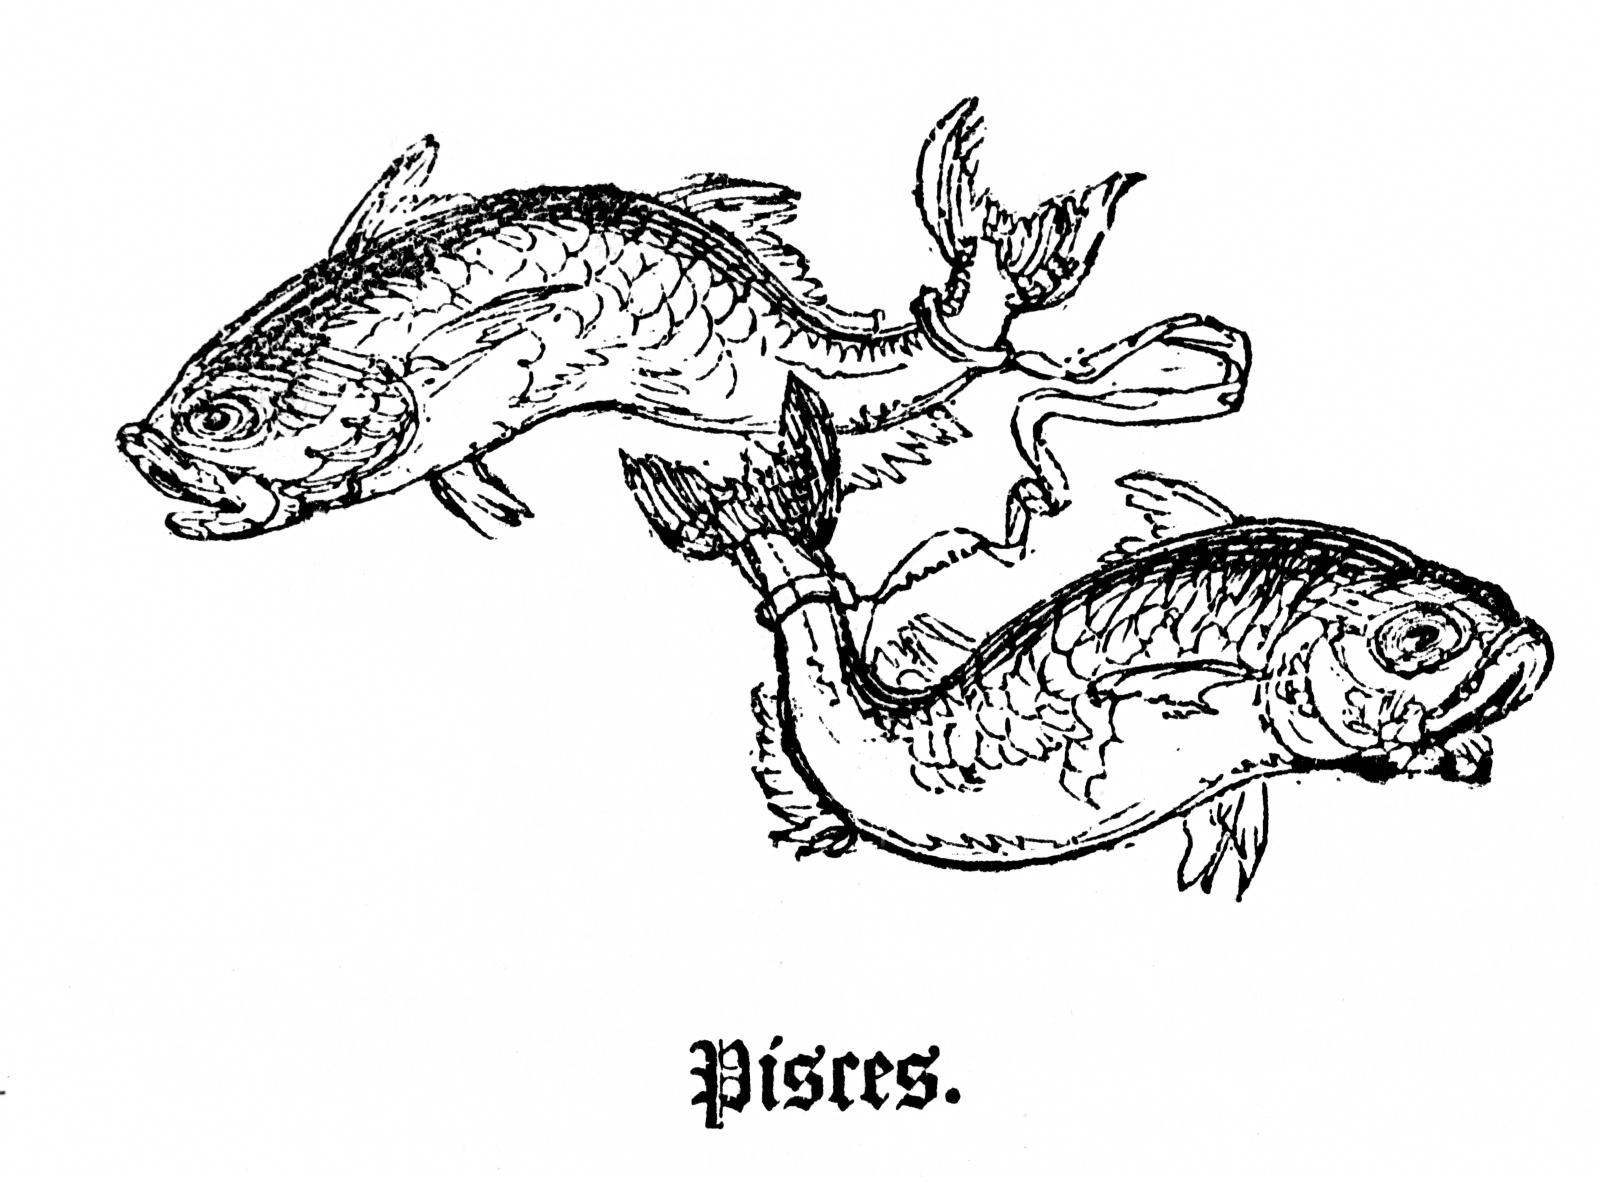 1600x1200 Filepisces Drawing.jpg